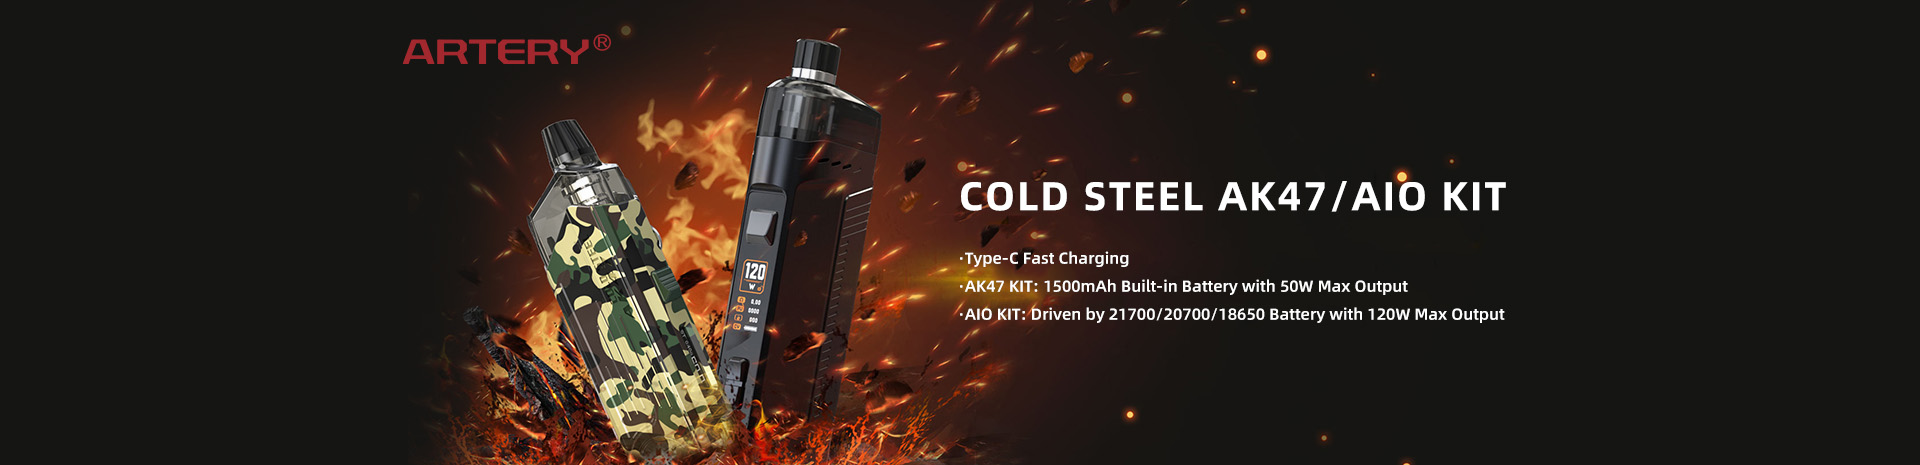 Artery Cold Steel Kit Banner